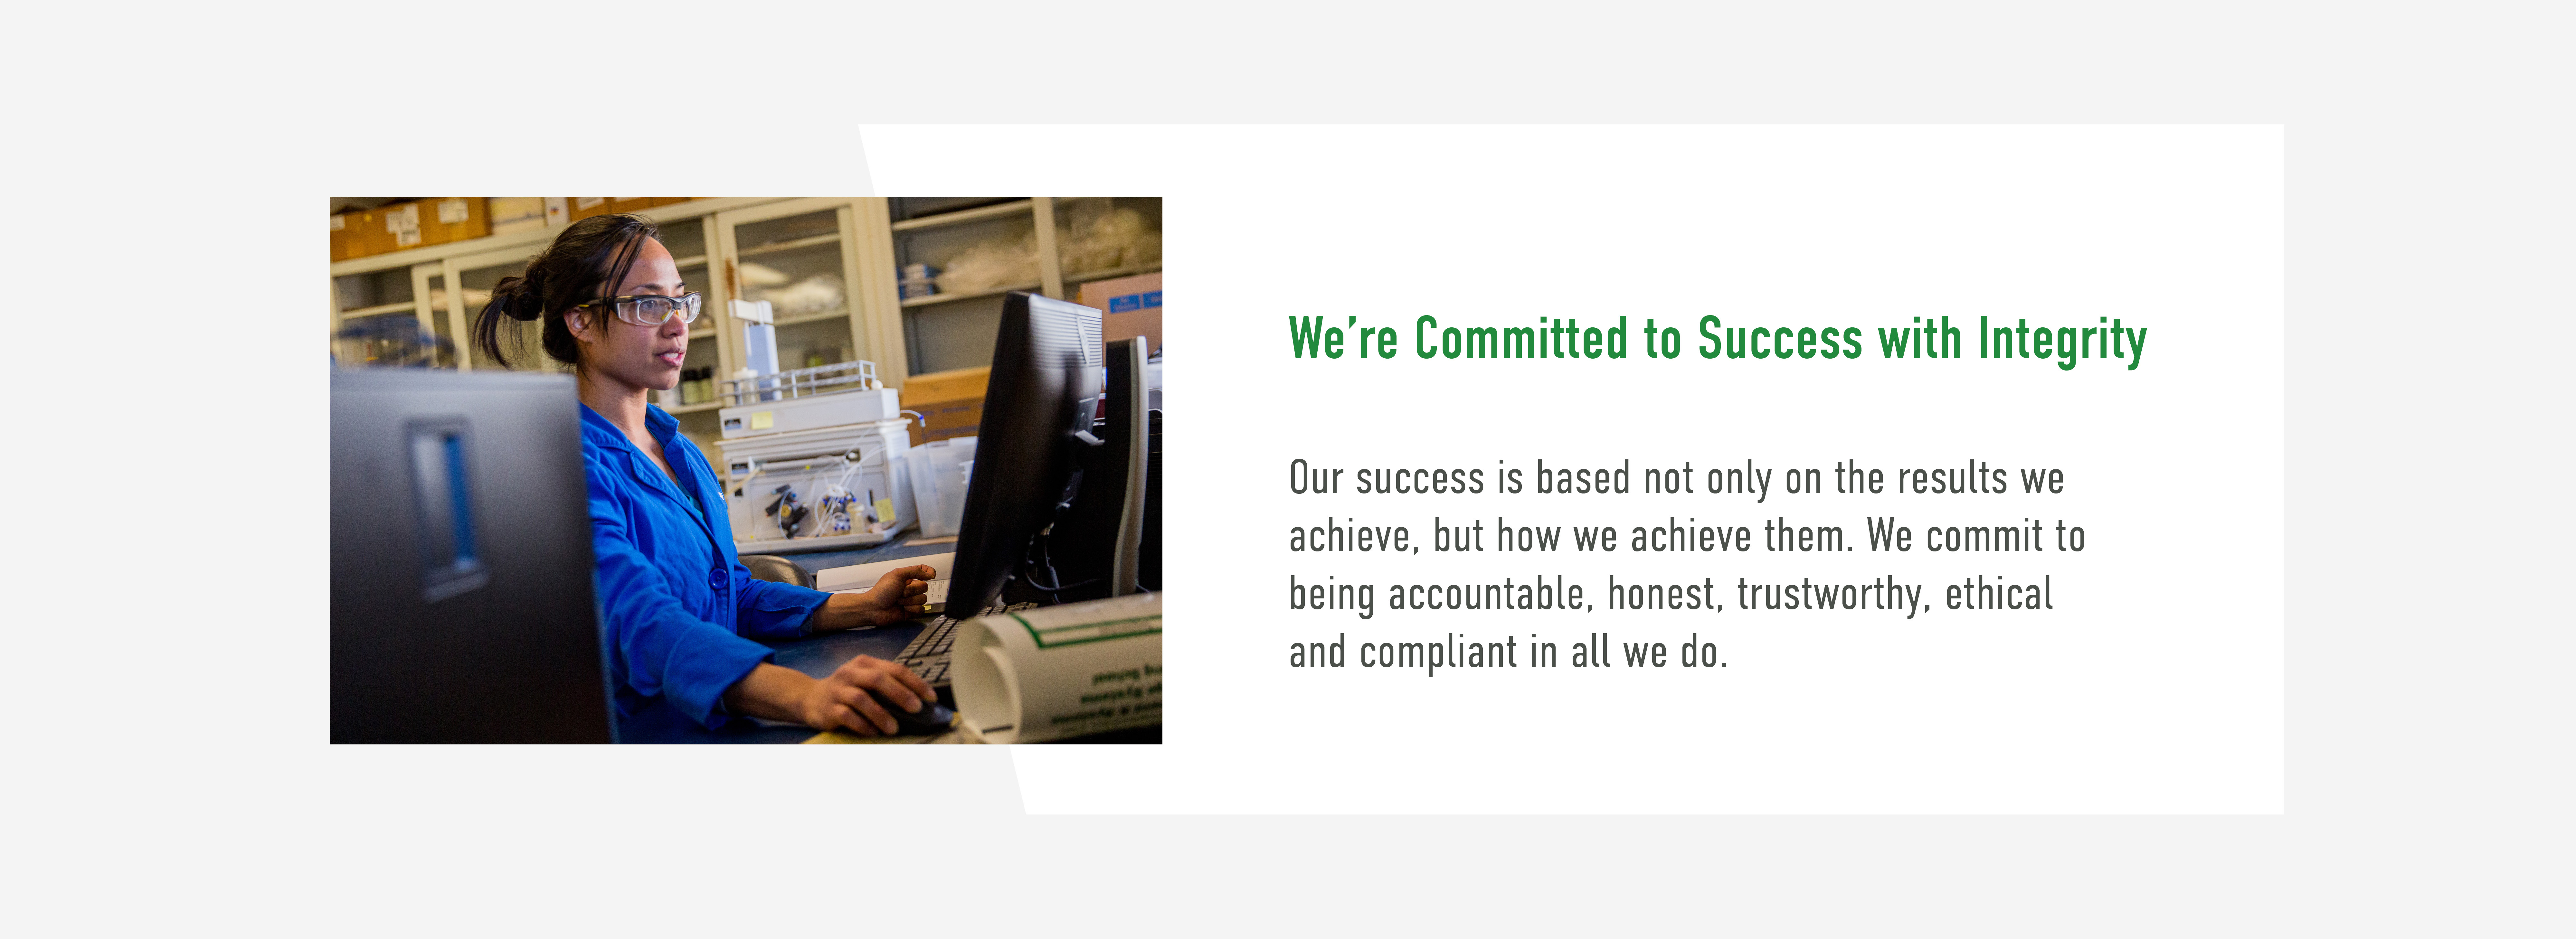 We're Committed to Success with Integrity. Our success is based not only on the results we achieve, but how we achieve them. We commit to being accountable, honest, trustworthy, ethical and compliant in all we do.